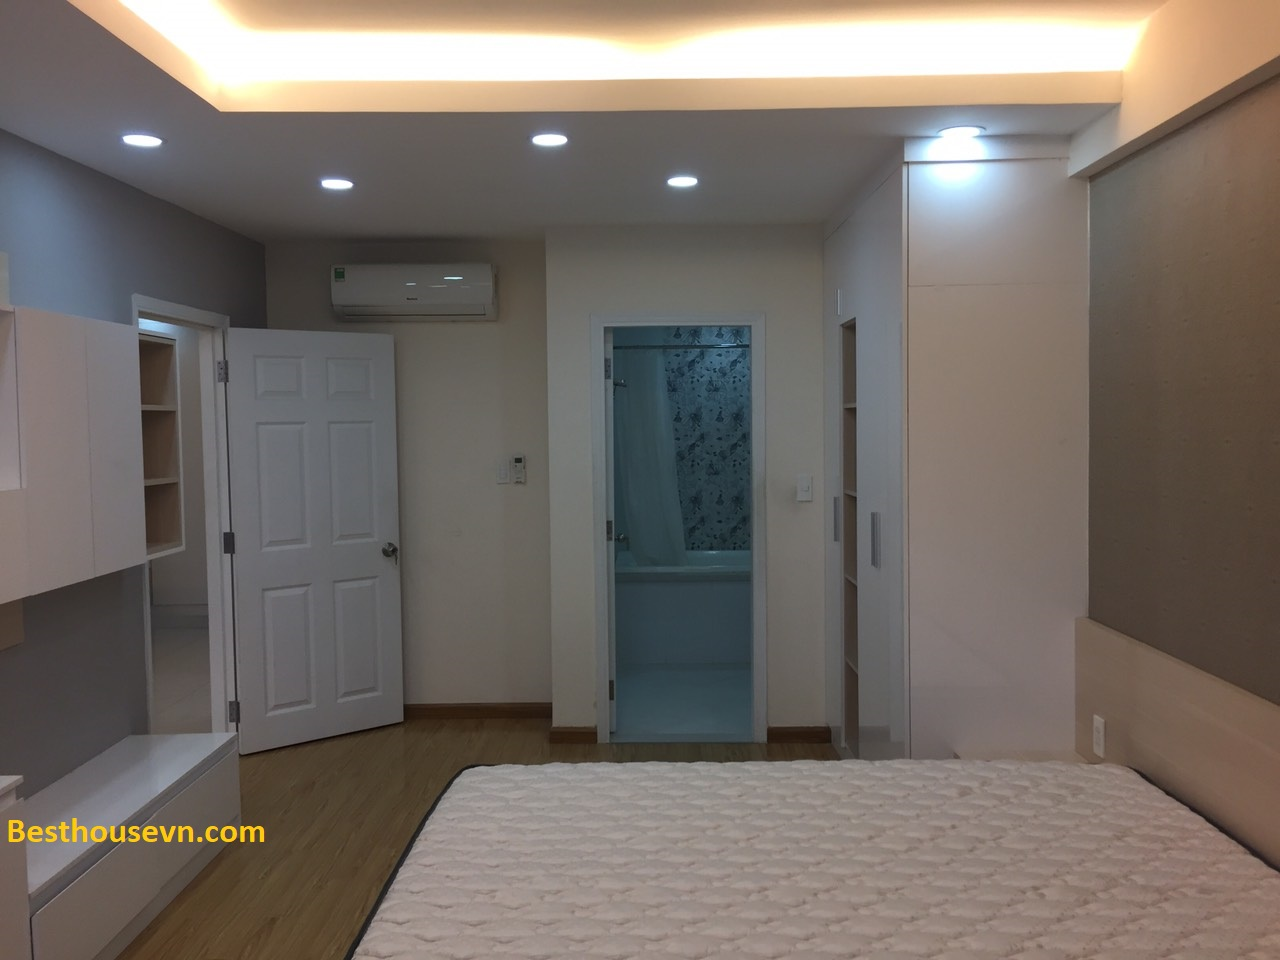 apartment-for-rent-happy-valley-phu-my-hung-district-7-3